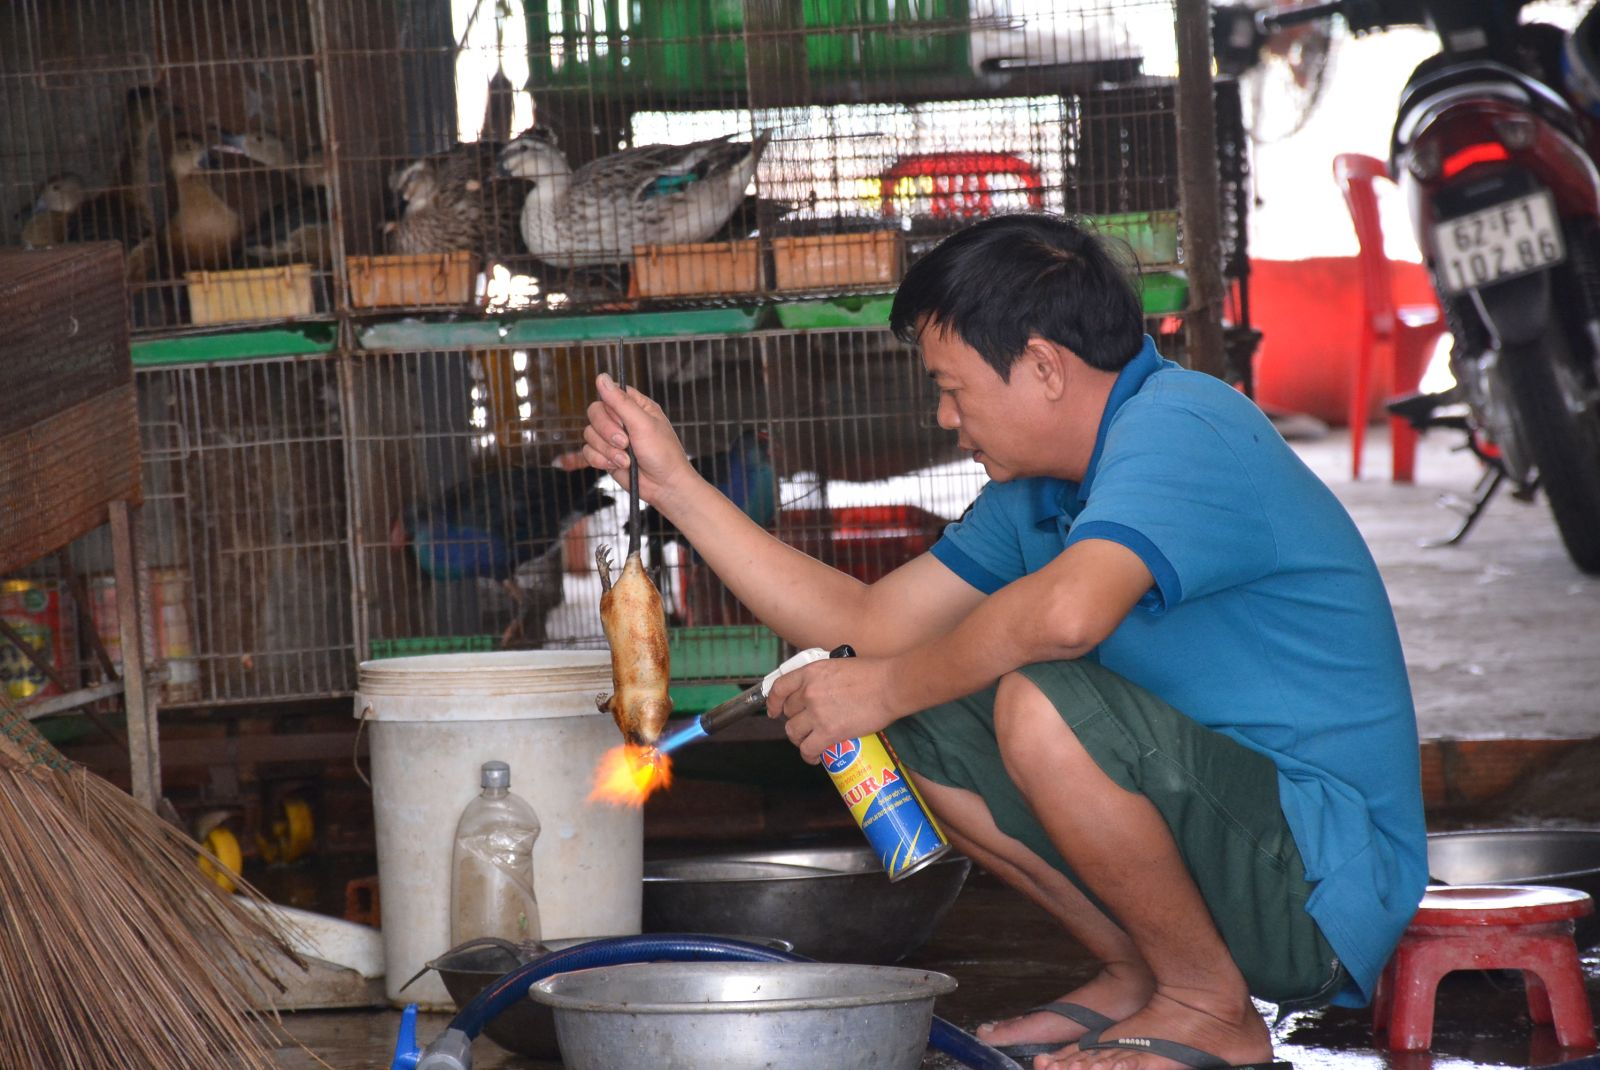 Presently, Thanh Hoa Agricultural Product Market has 31 households trading wildlife animals